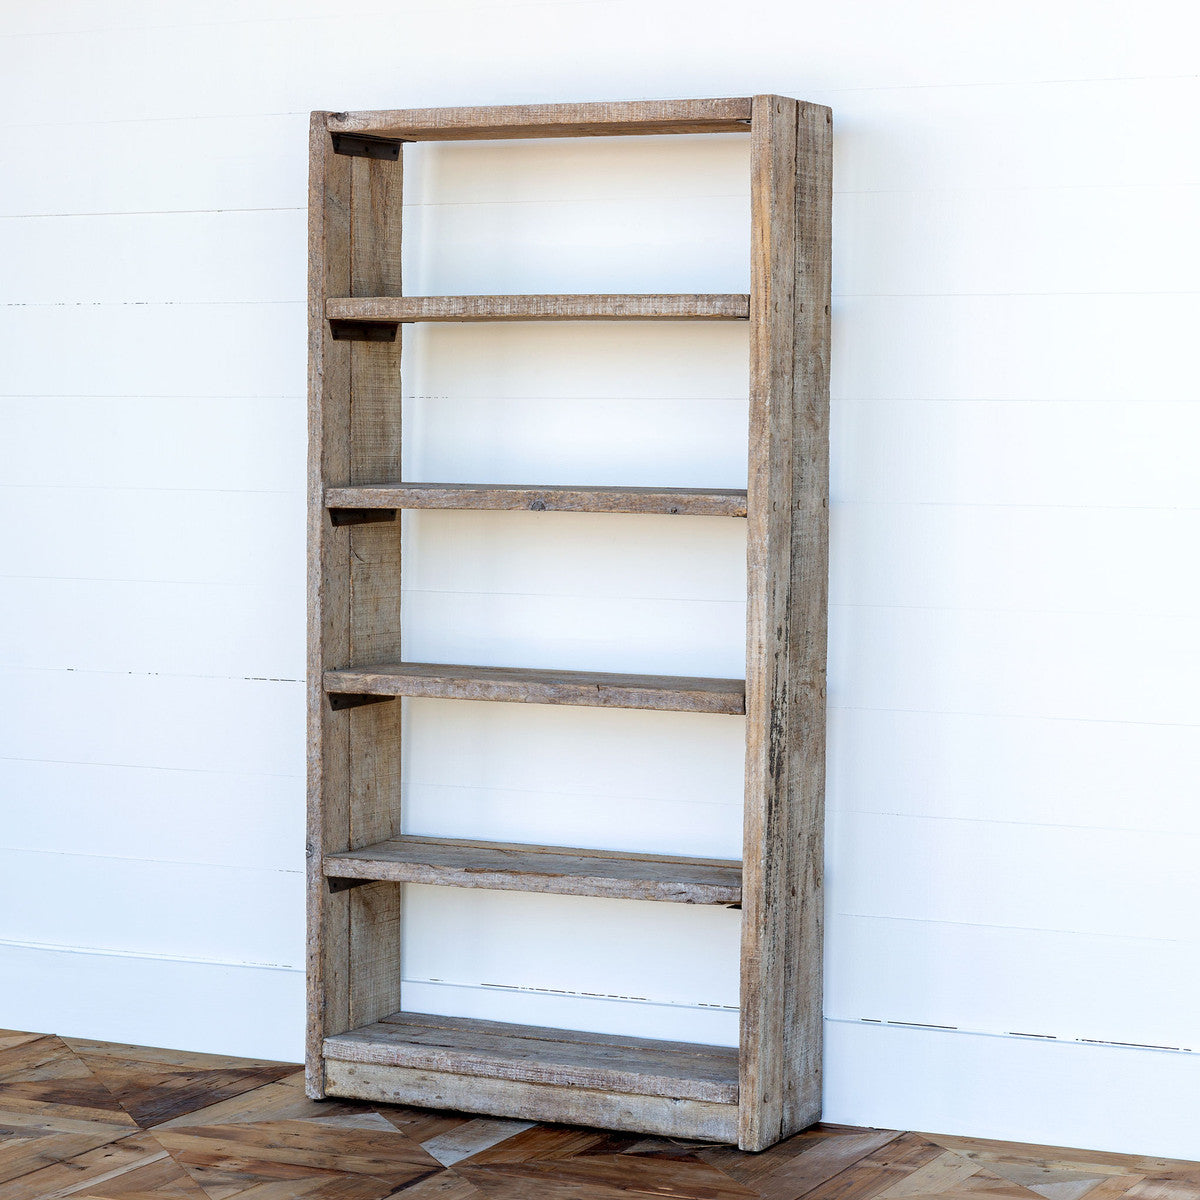 Lovecup Potter's Shelf with Reclaimed Wood L288